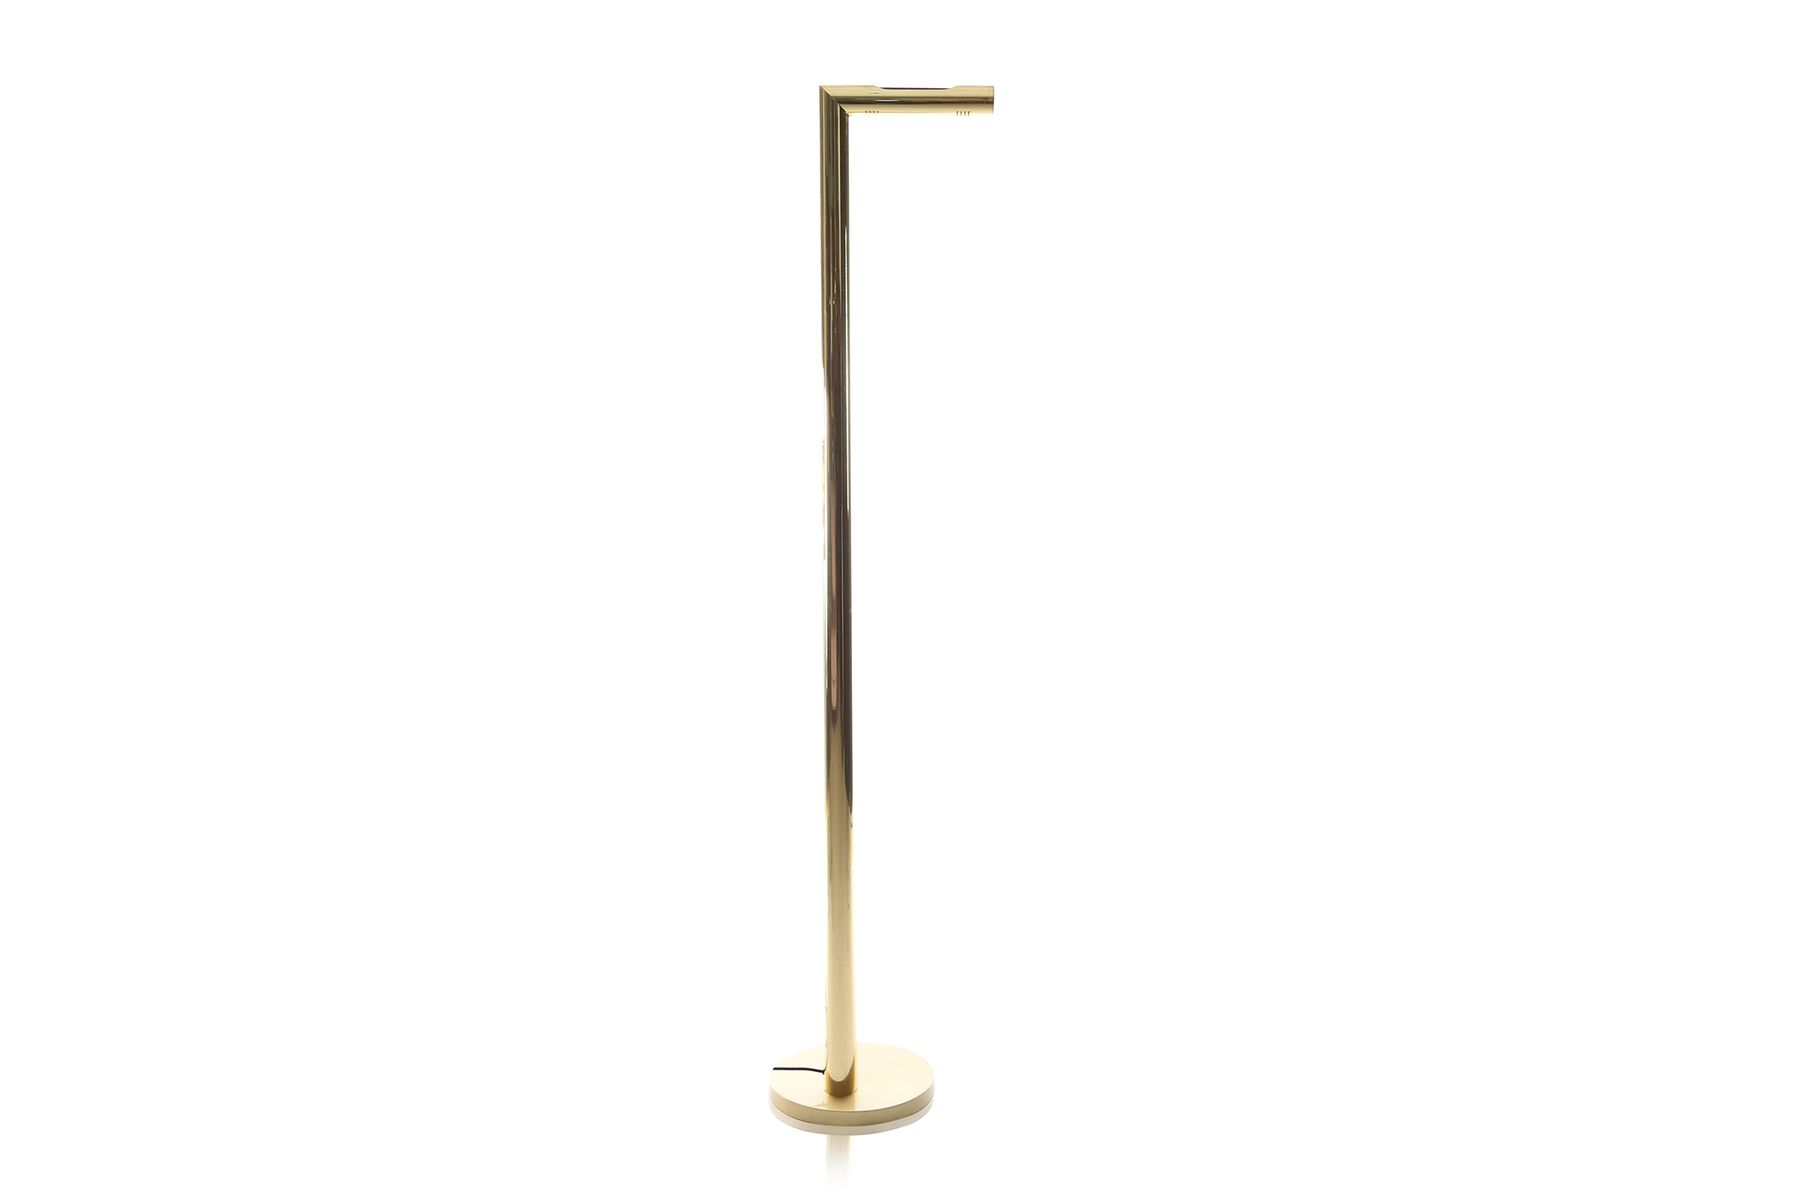 Brass uplighting floor lamp 1970s for sale at pamono for 1970s floor lamps